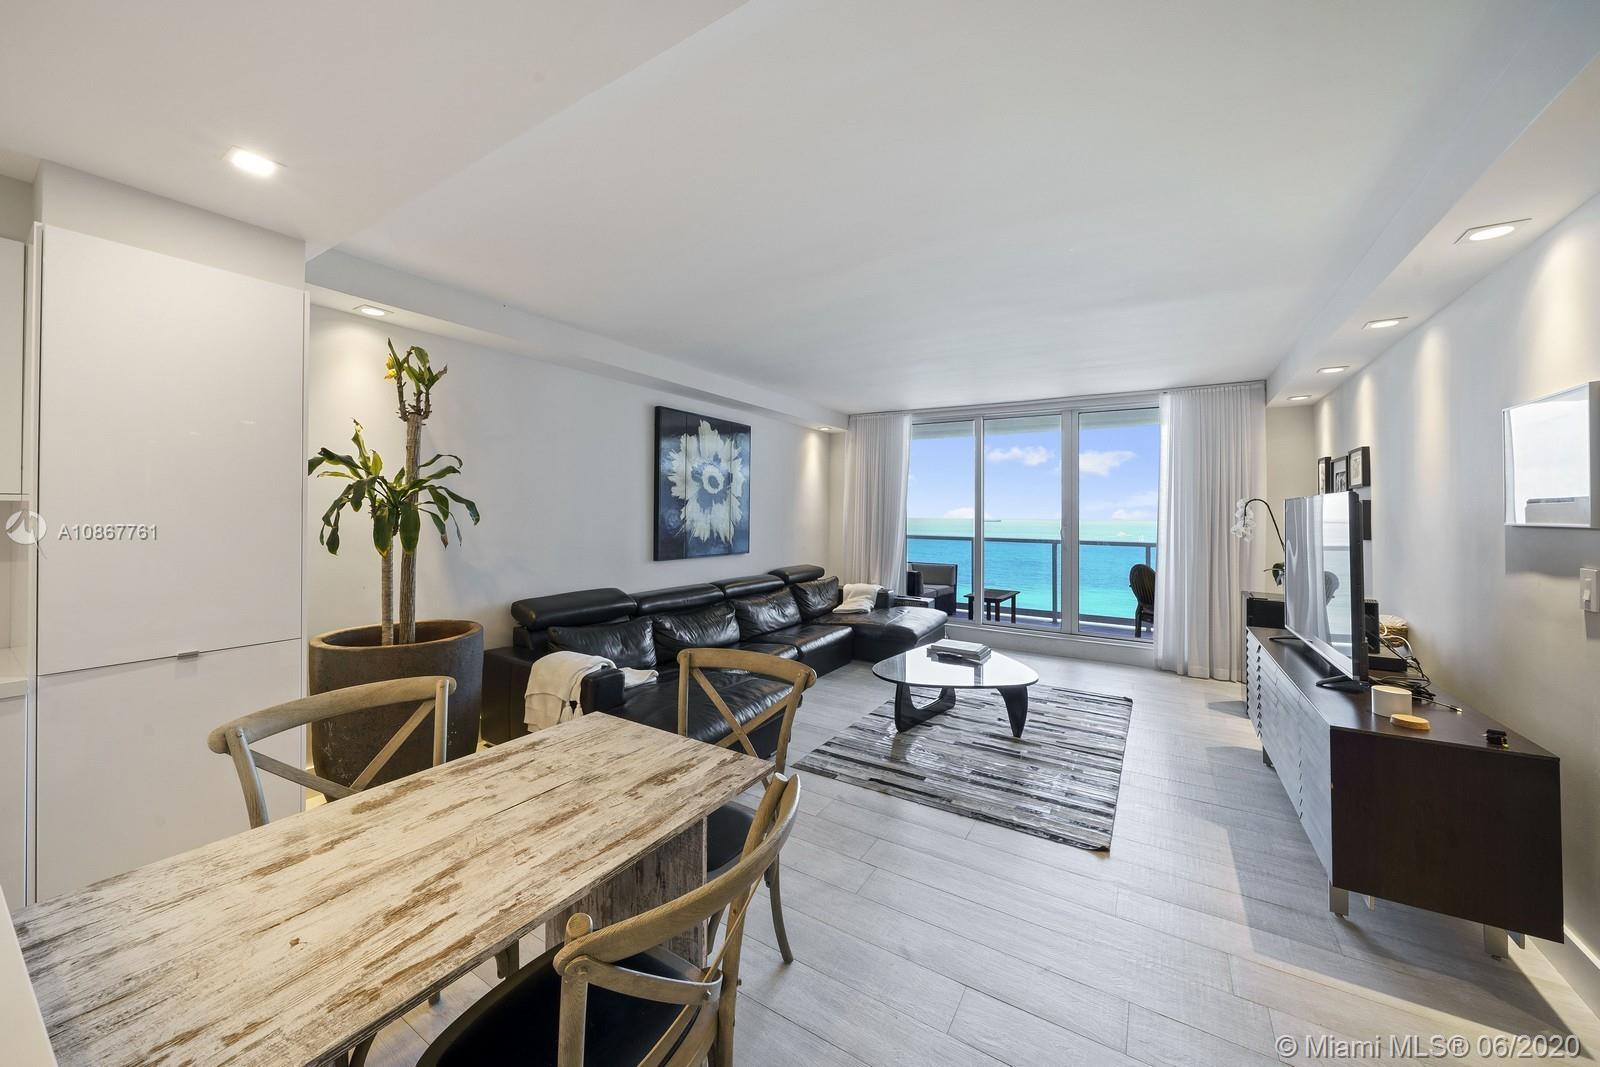 This gorgeous oceanfront unit was combined creating an expansive and luxurious residence with stunni